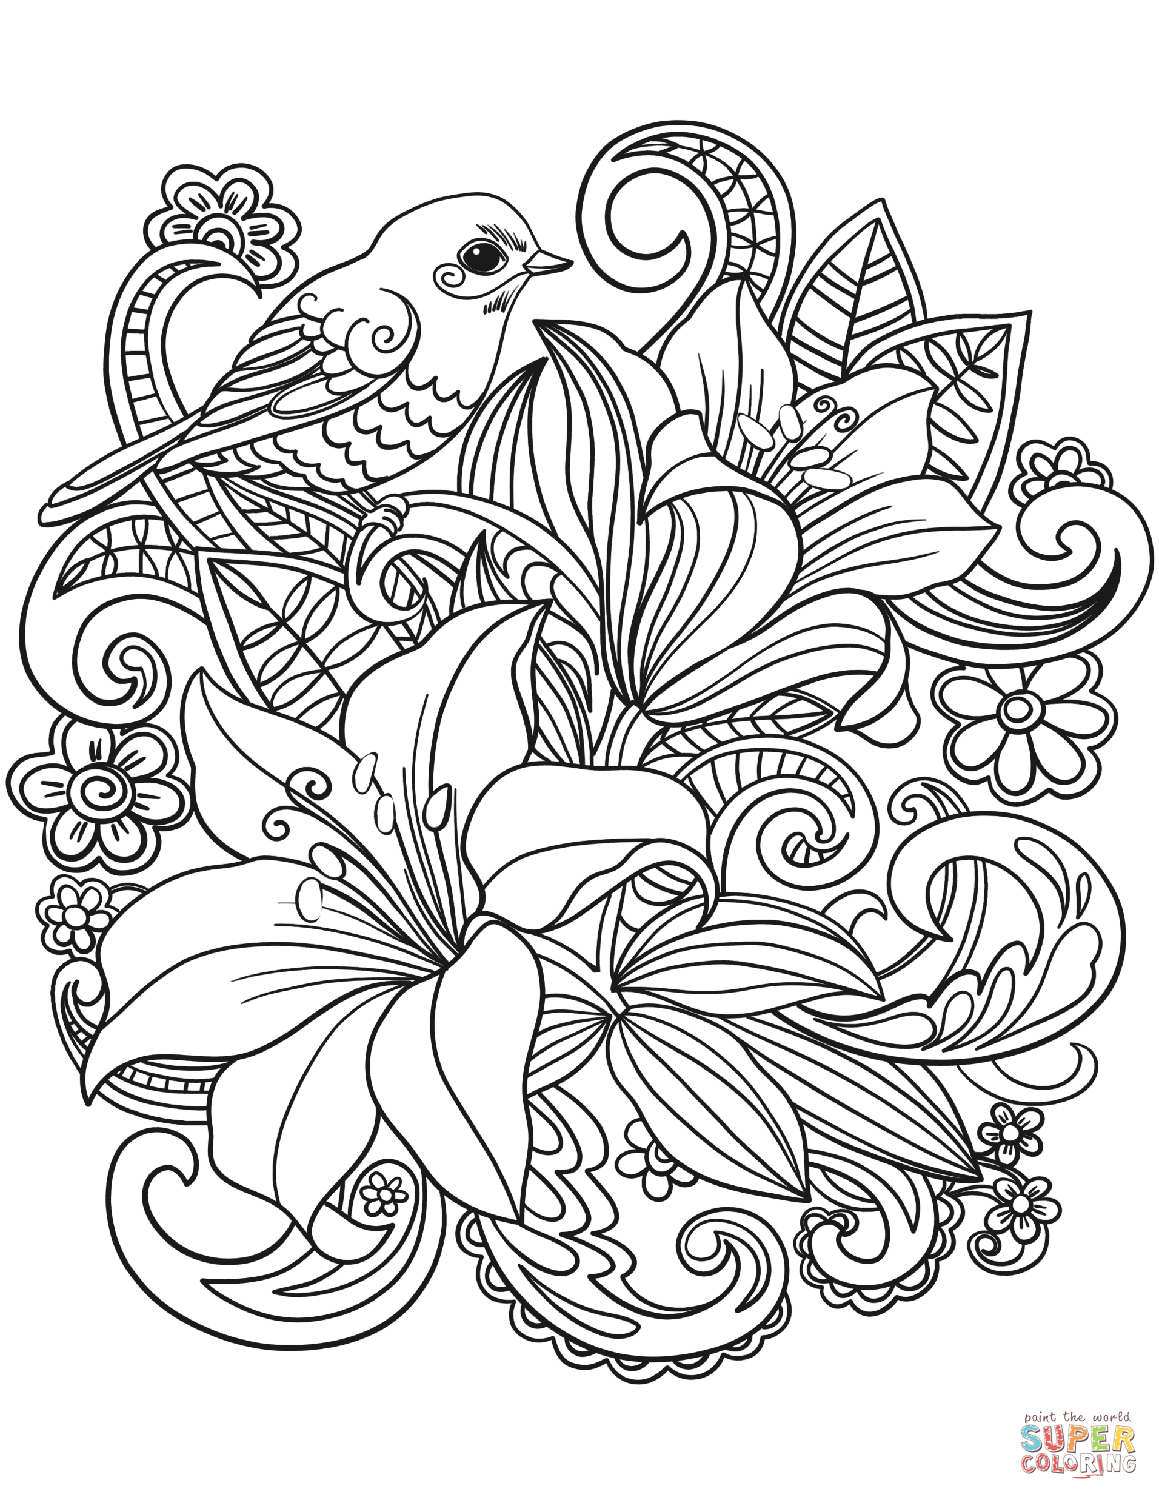 Flowers Coloring Pages Free Printable Luxury Printable Colouring Pages Free Adult Coloring Detailed For